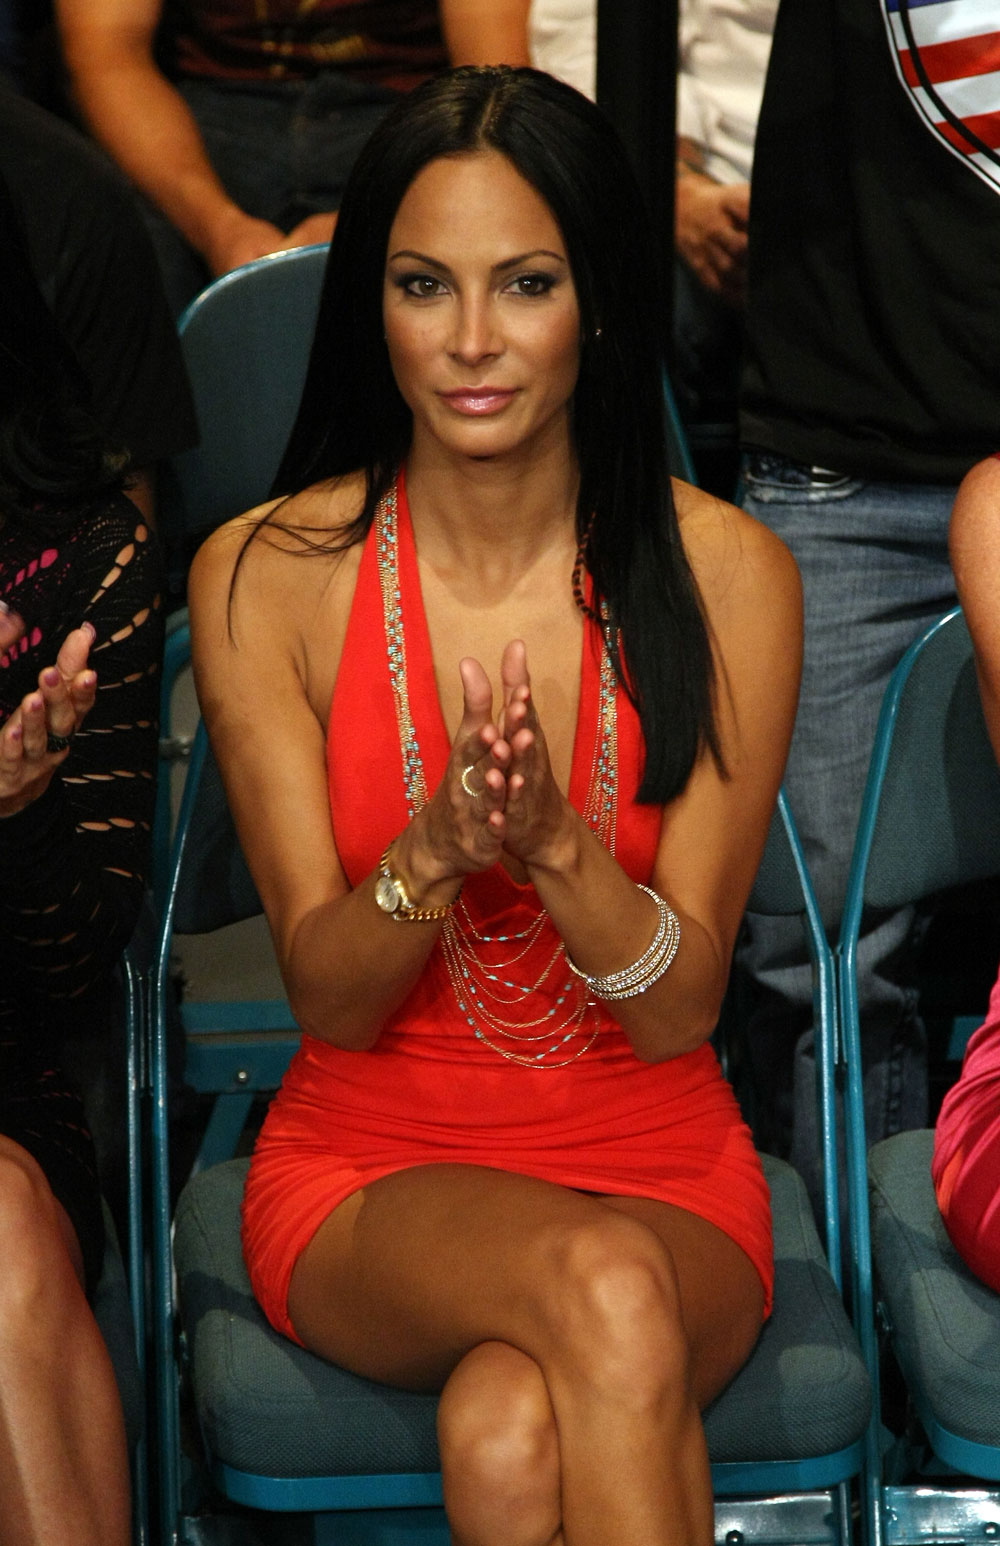 TV Personality and model Kenda Perez in attendance of UFC 132.